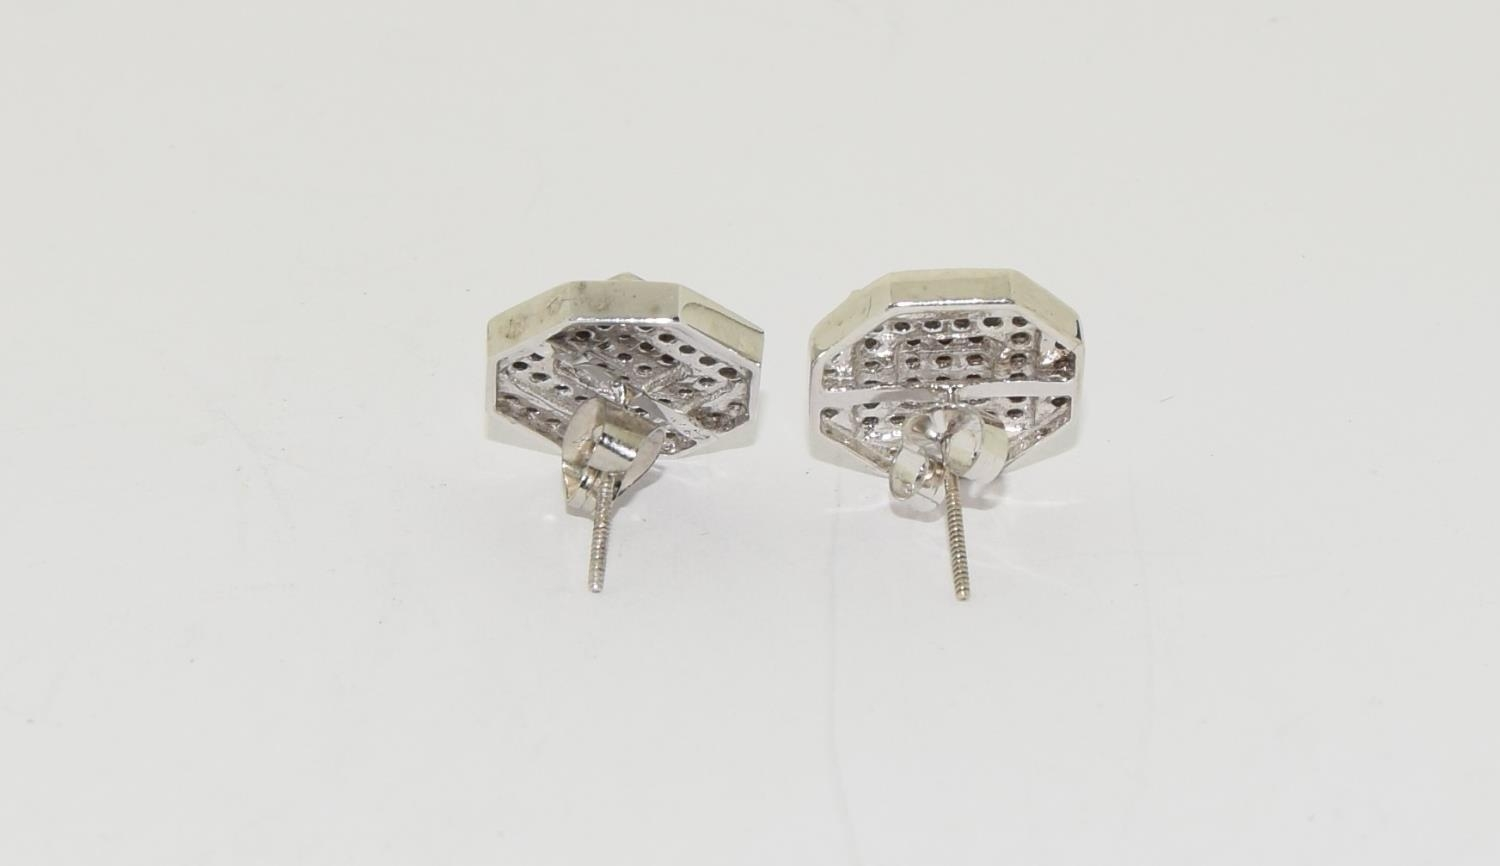 Pair of 14ct white gold cluster diamond earrings of approx 1ct - Image 3 of 5